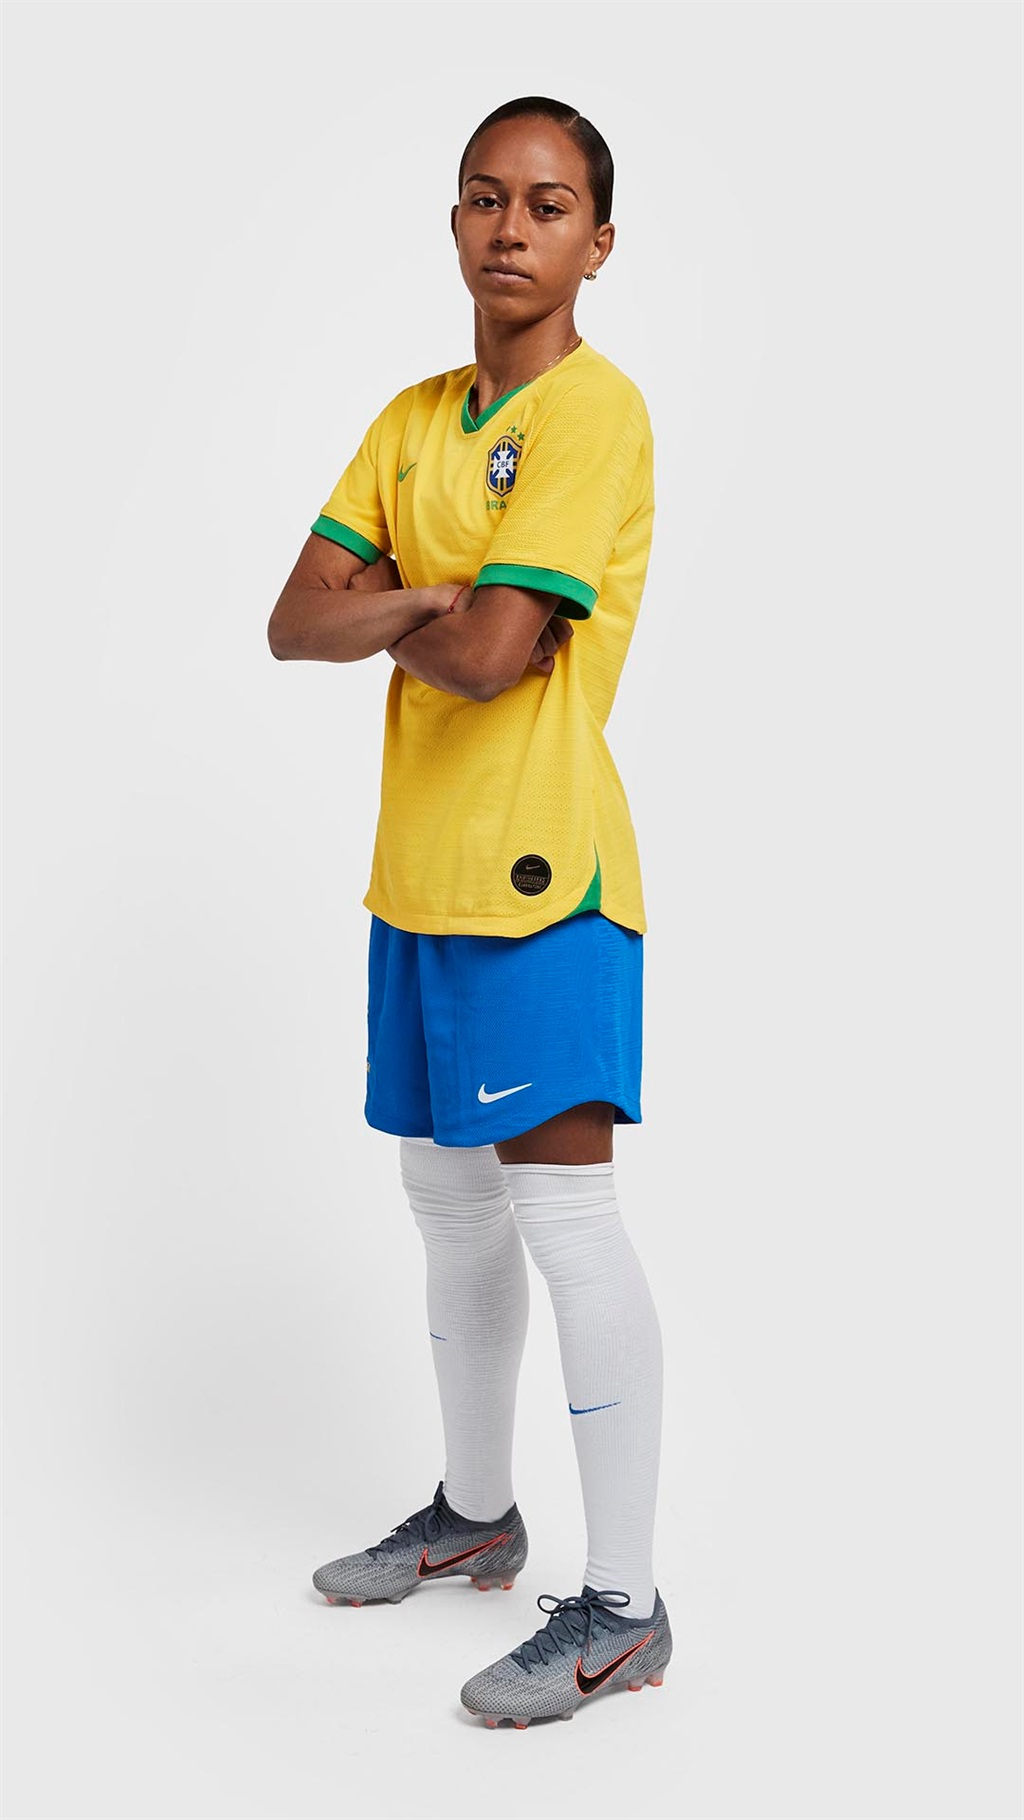 2315f95da9f The new Women s World Cup uniforms for every country - including ...